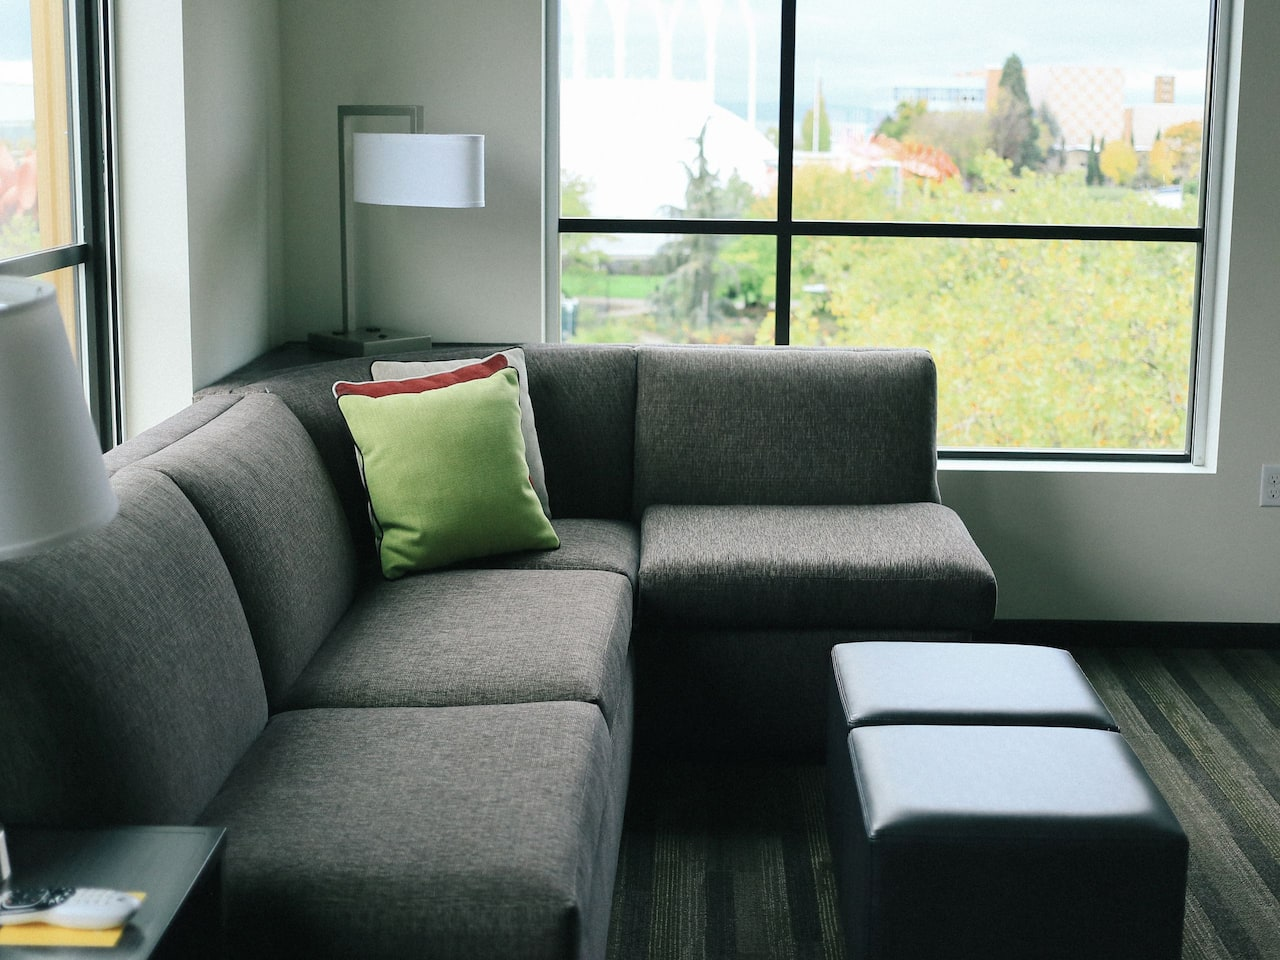 Hyatt House Cozy Corner Couch